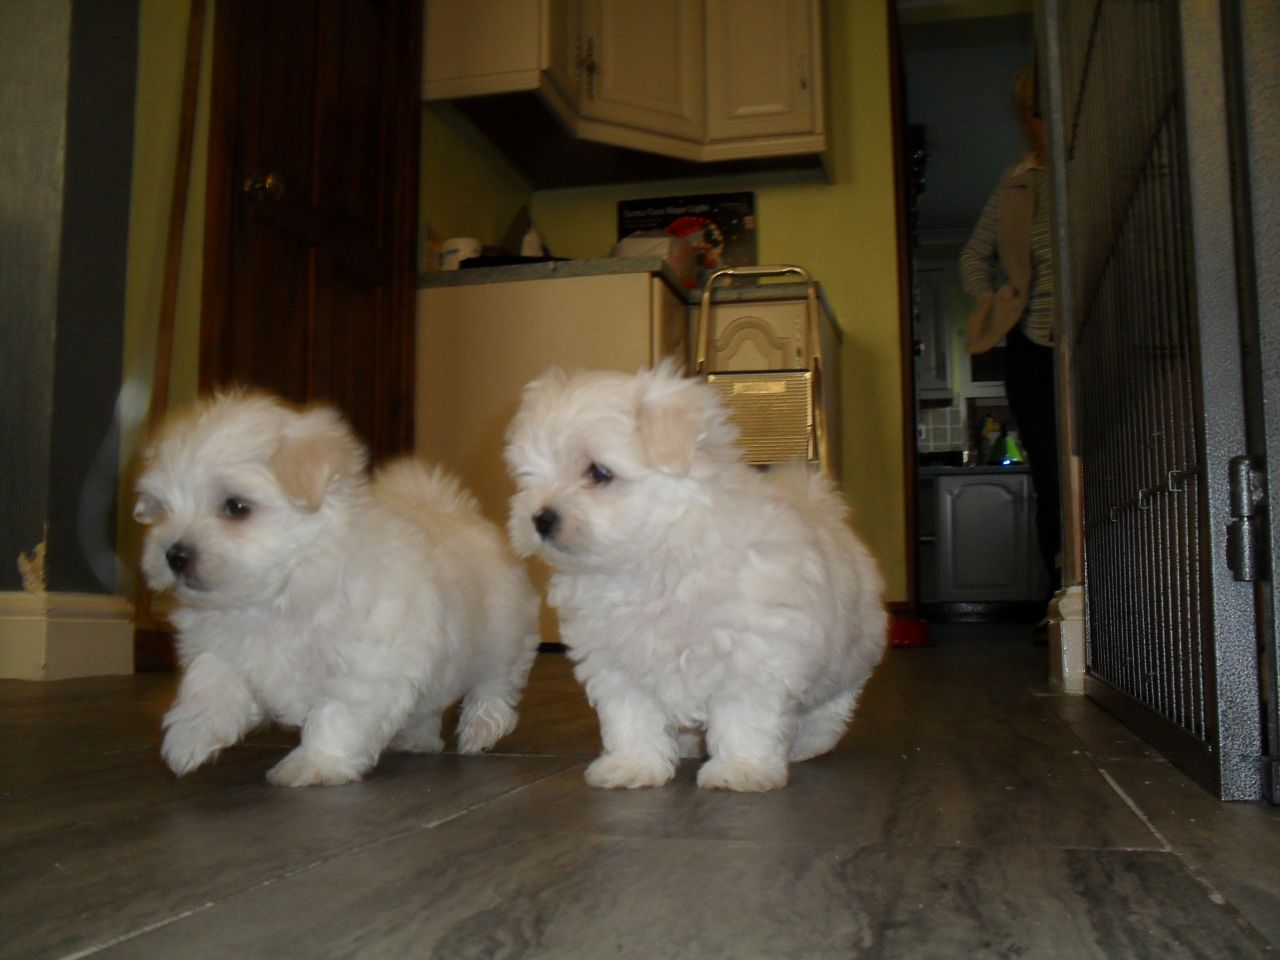 Dogs For Sale Adoption in Islamabad Pakistan Classifieds